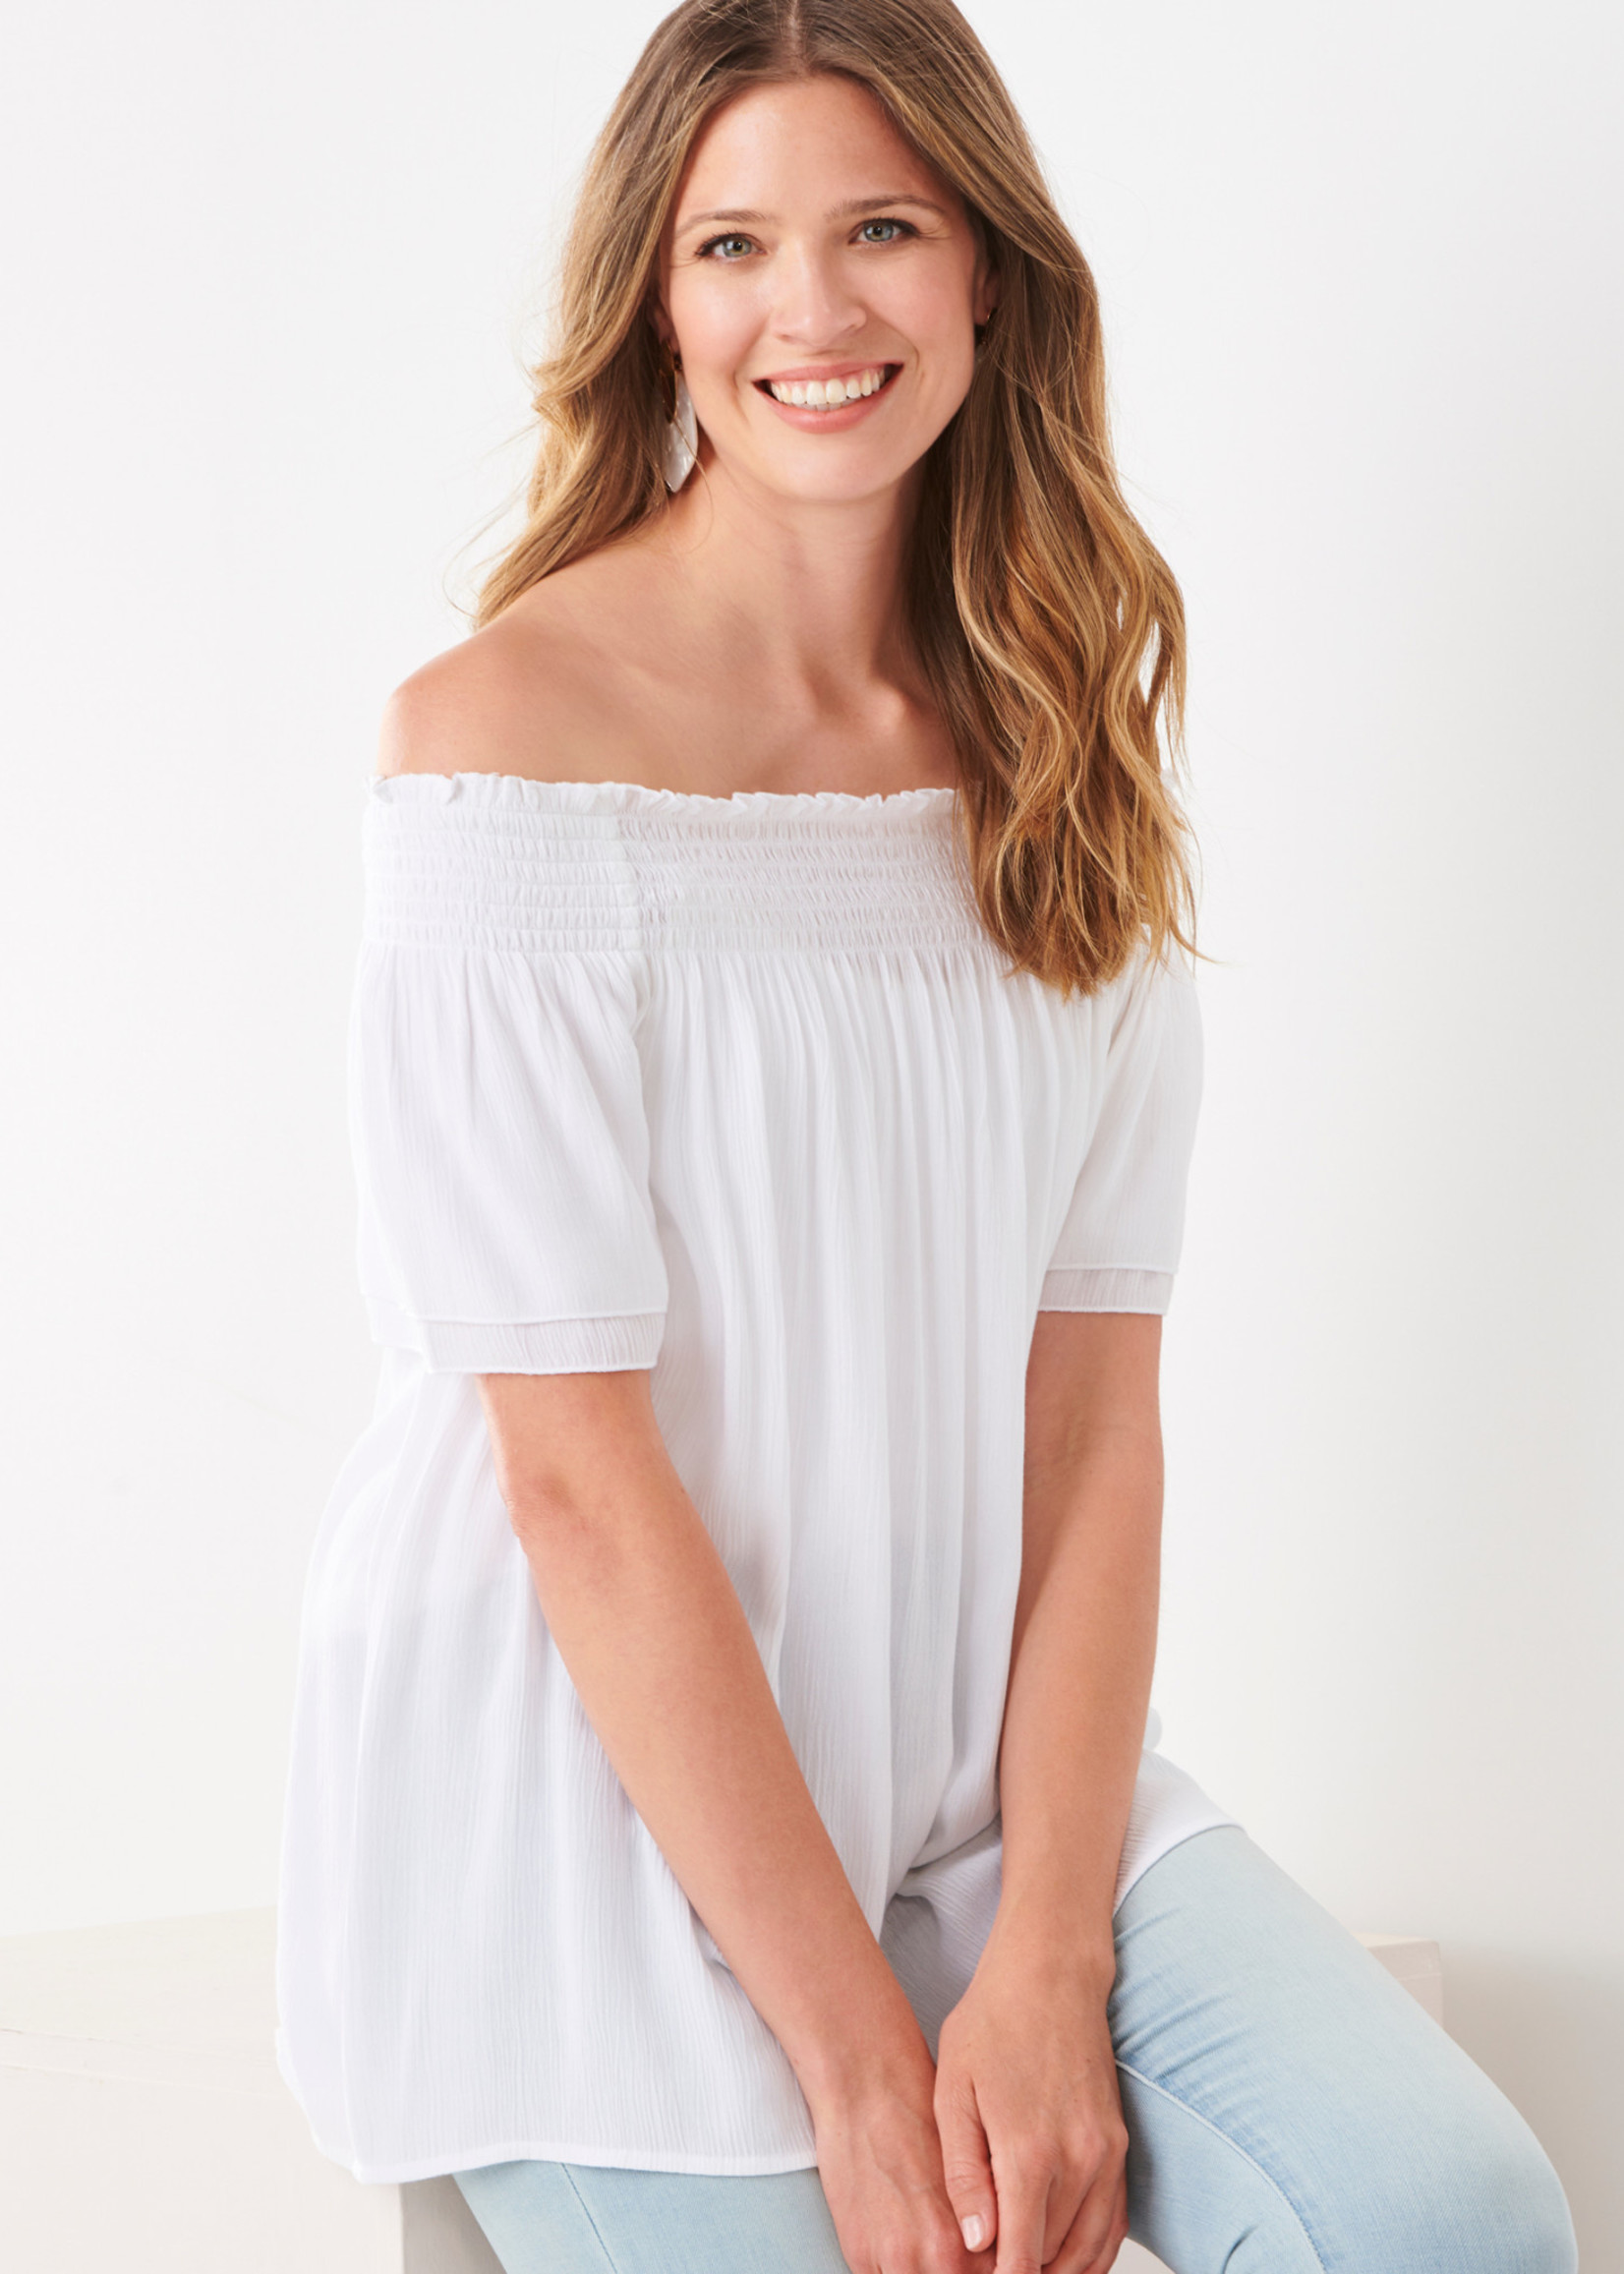 Charlie Paige CP - Woven Top (2 colors)